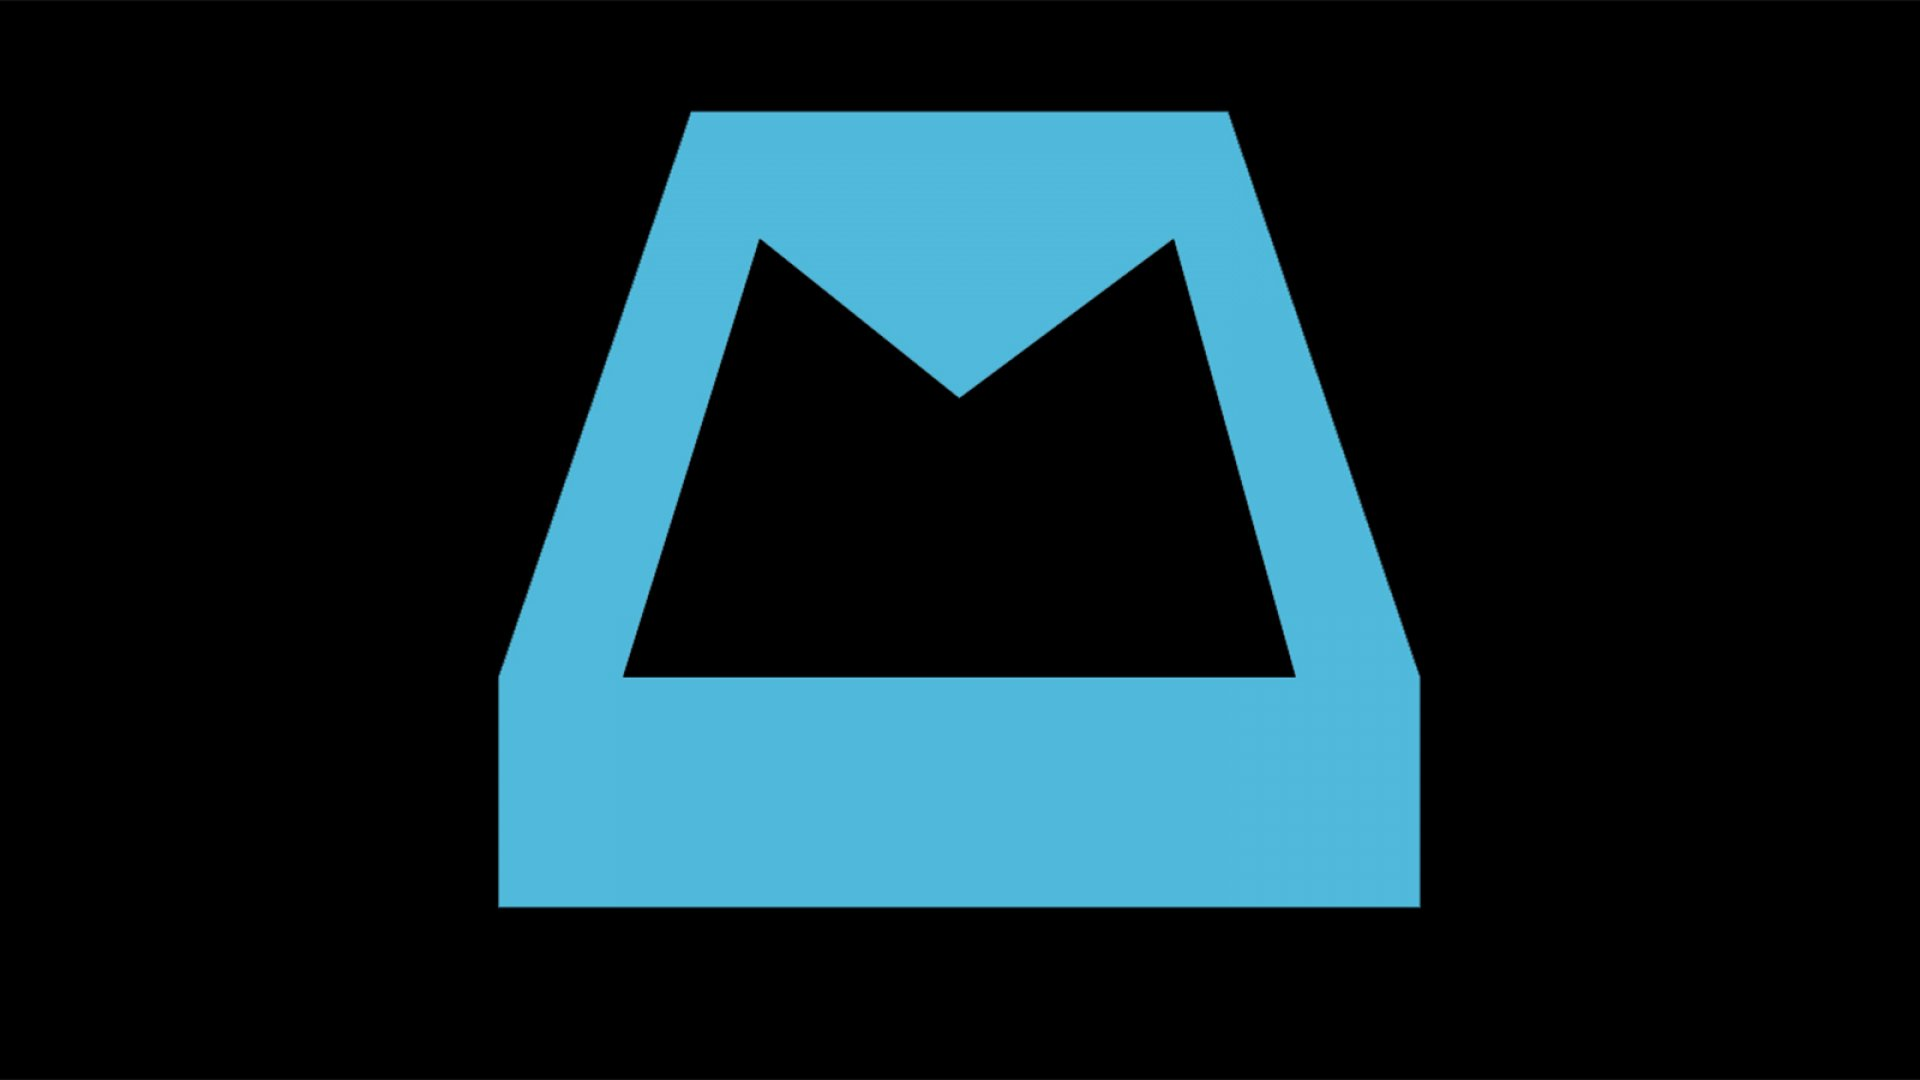 Dropbox Just Killed Mailbox, the Greatest Email App of All Time